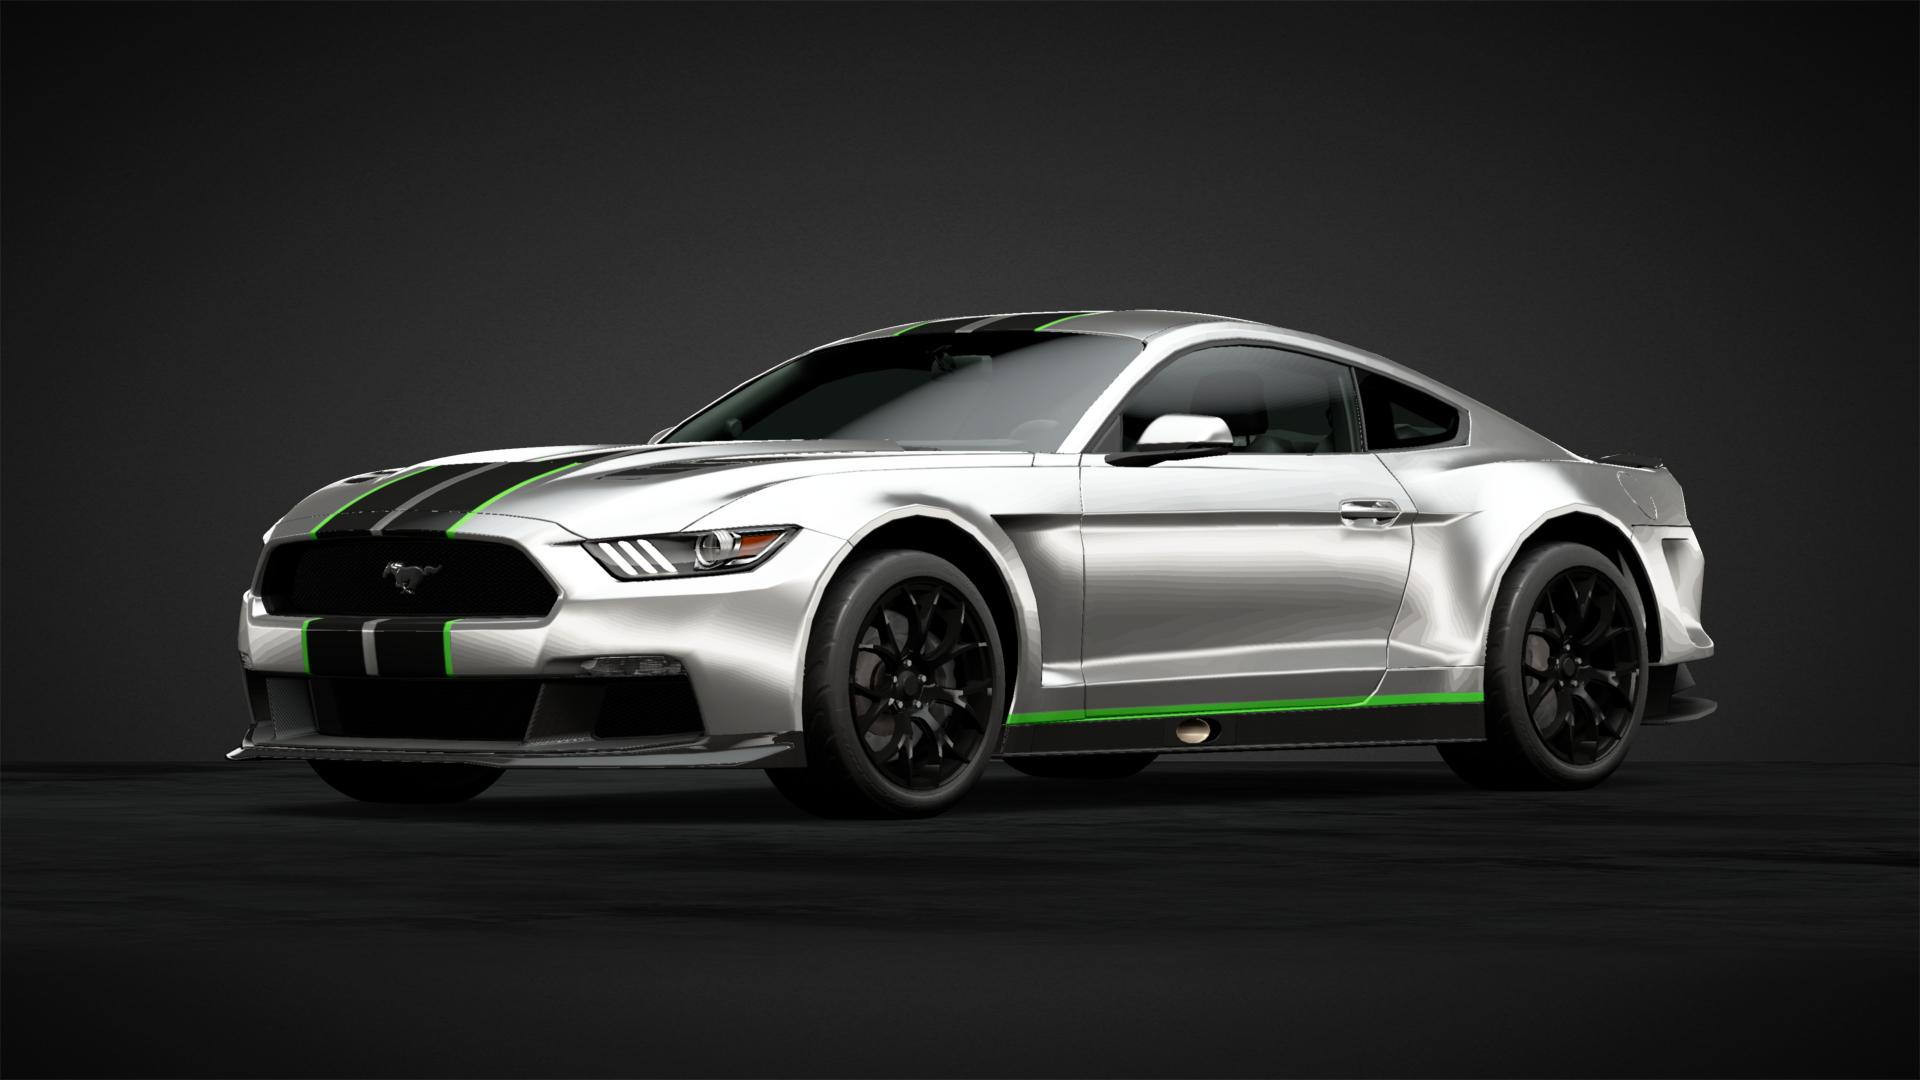 Nfs Payback Mustang Car Livery By Woobie 83 Community Gran